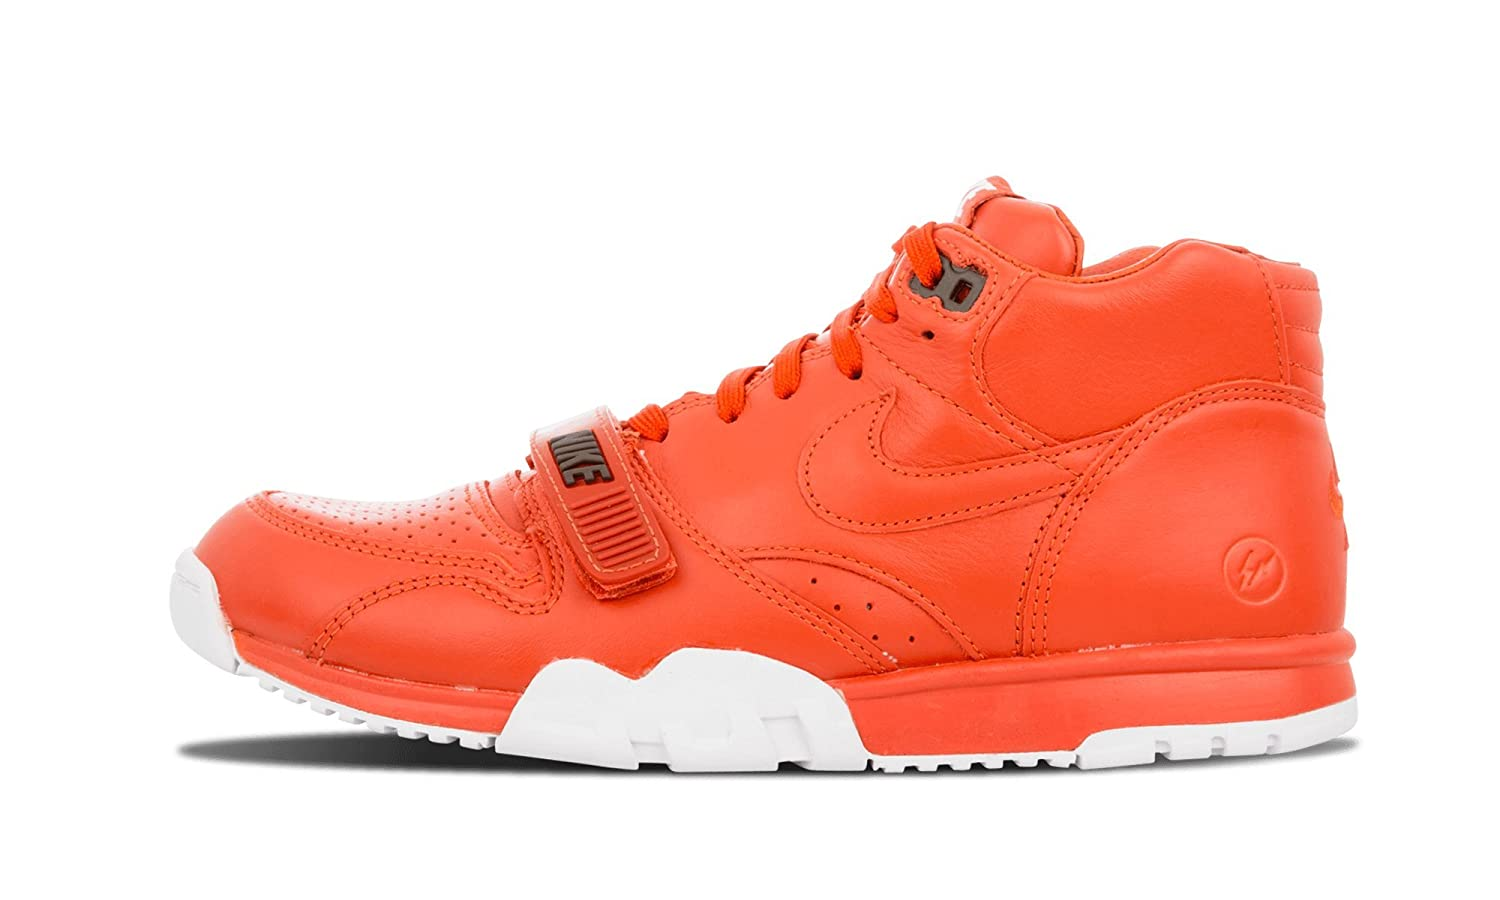 675952c5204 Nike Mens - Air Trainer 1 Mid SP Fragment  RARE  - BNIB - No Lid - Rust  Orange White - UK 9  Amazon.co.uk  Shoes   Bags